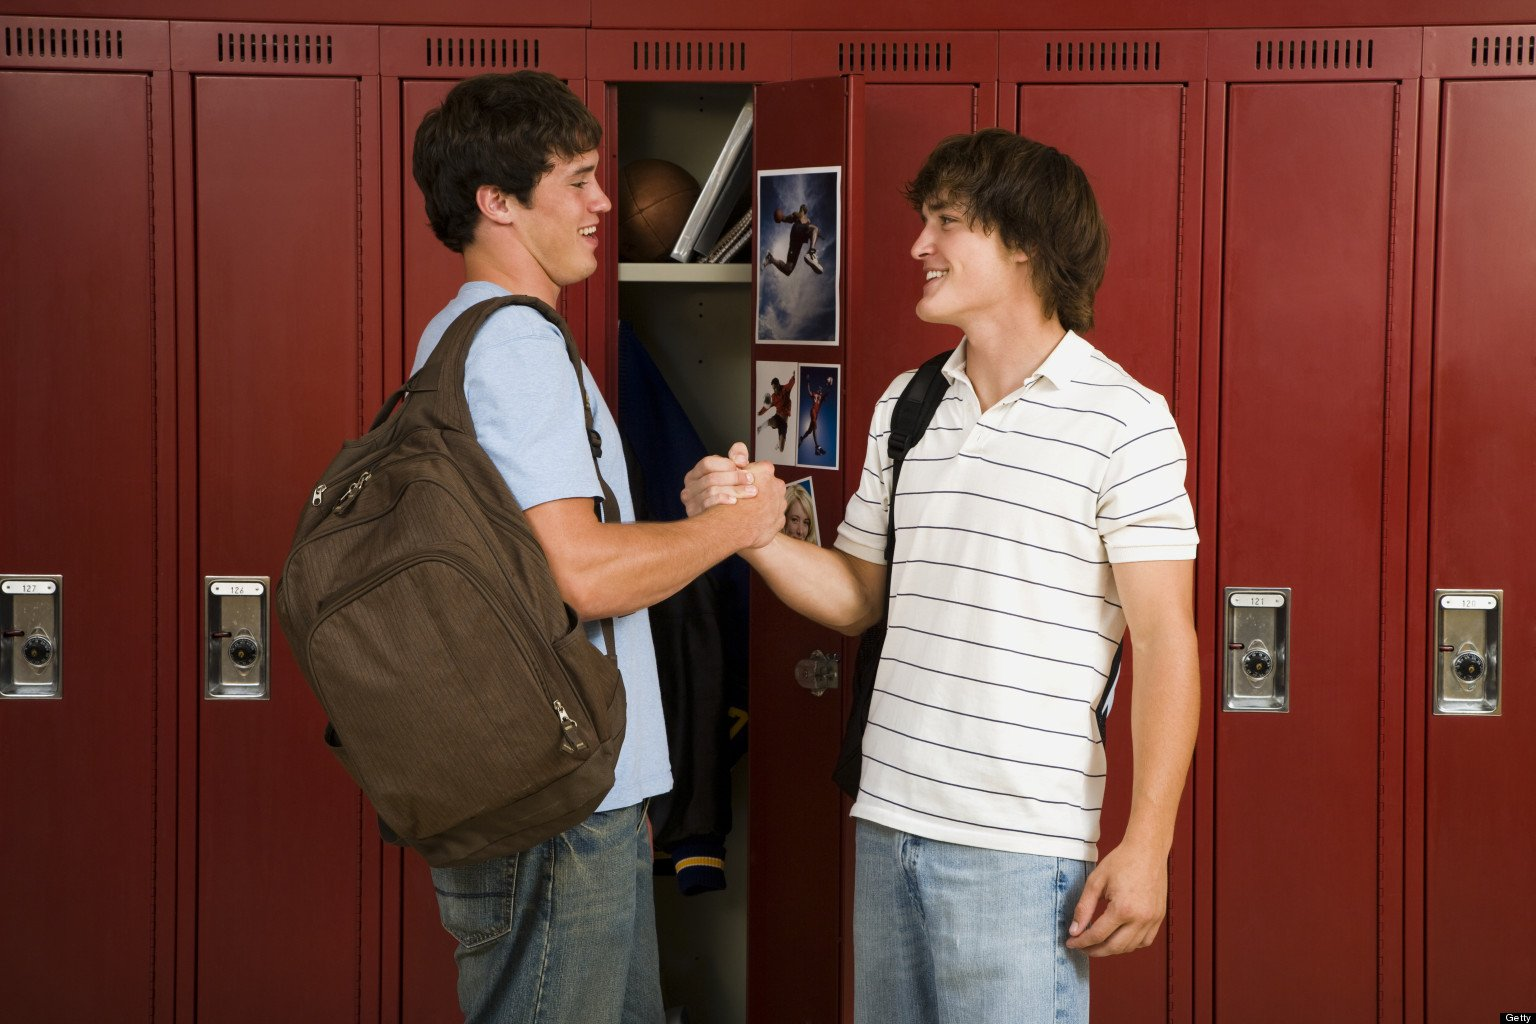 Two male High School students